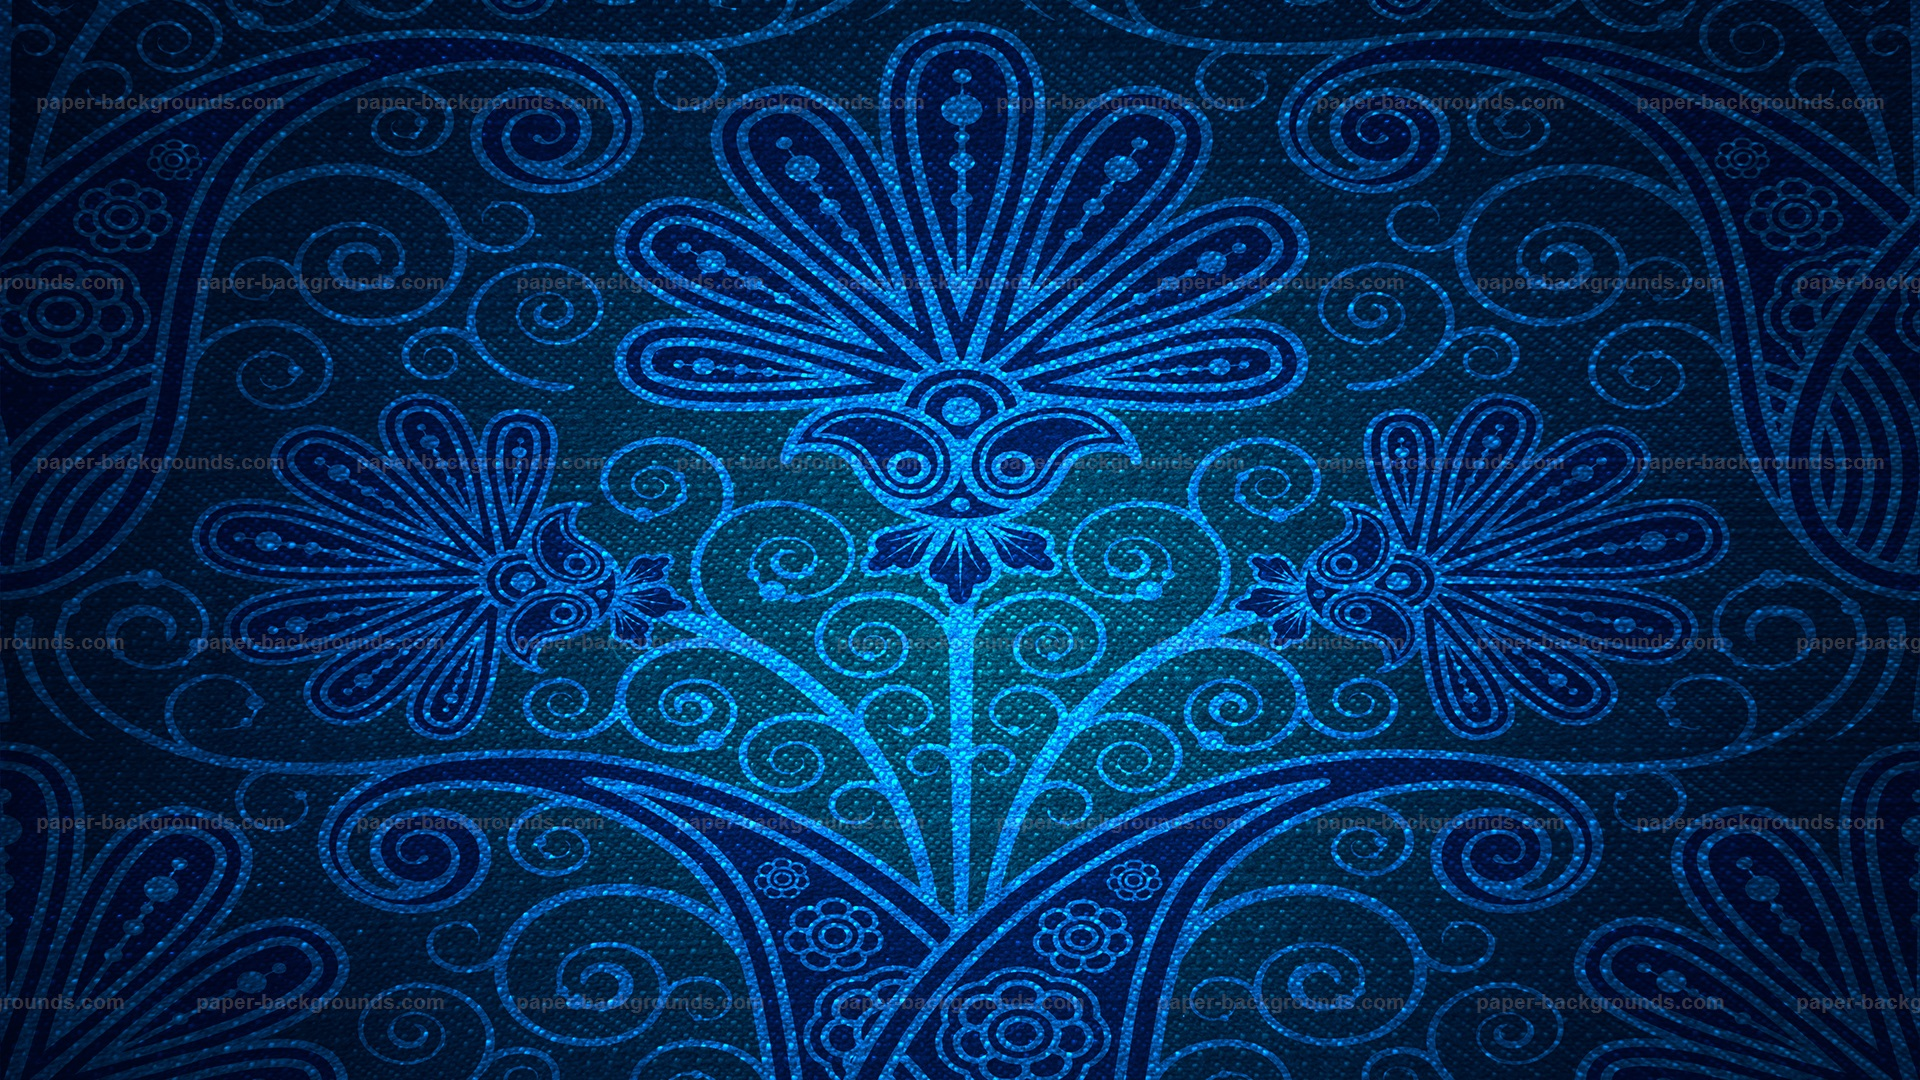 Blue Texture wallpaper   903870 1920x1080